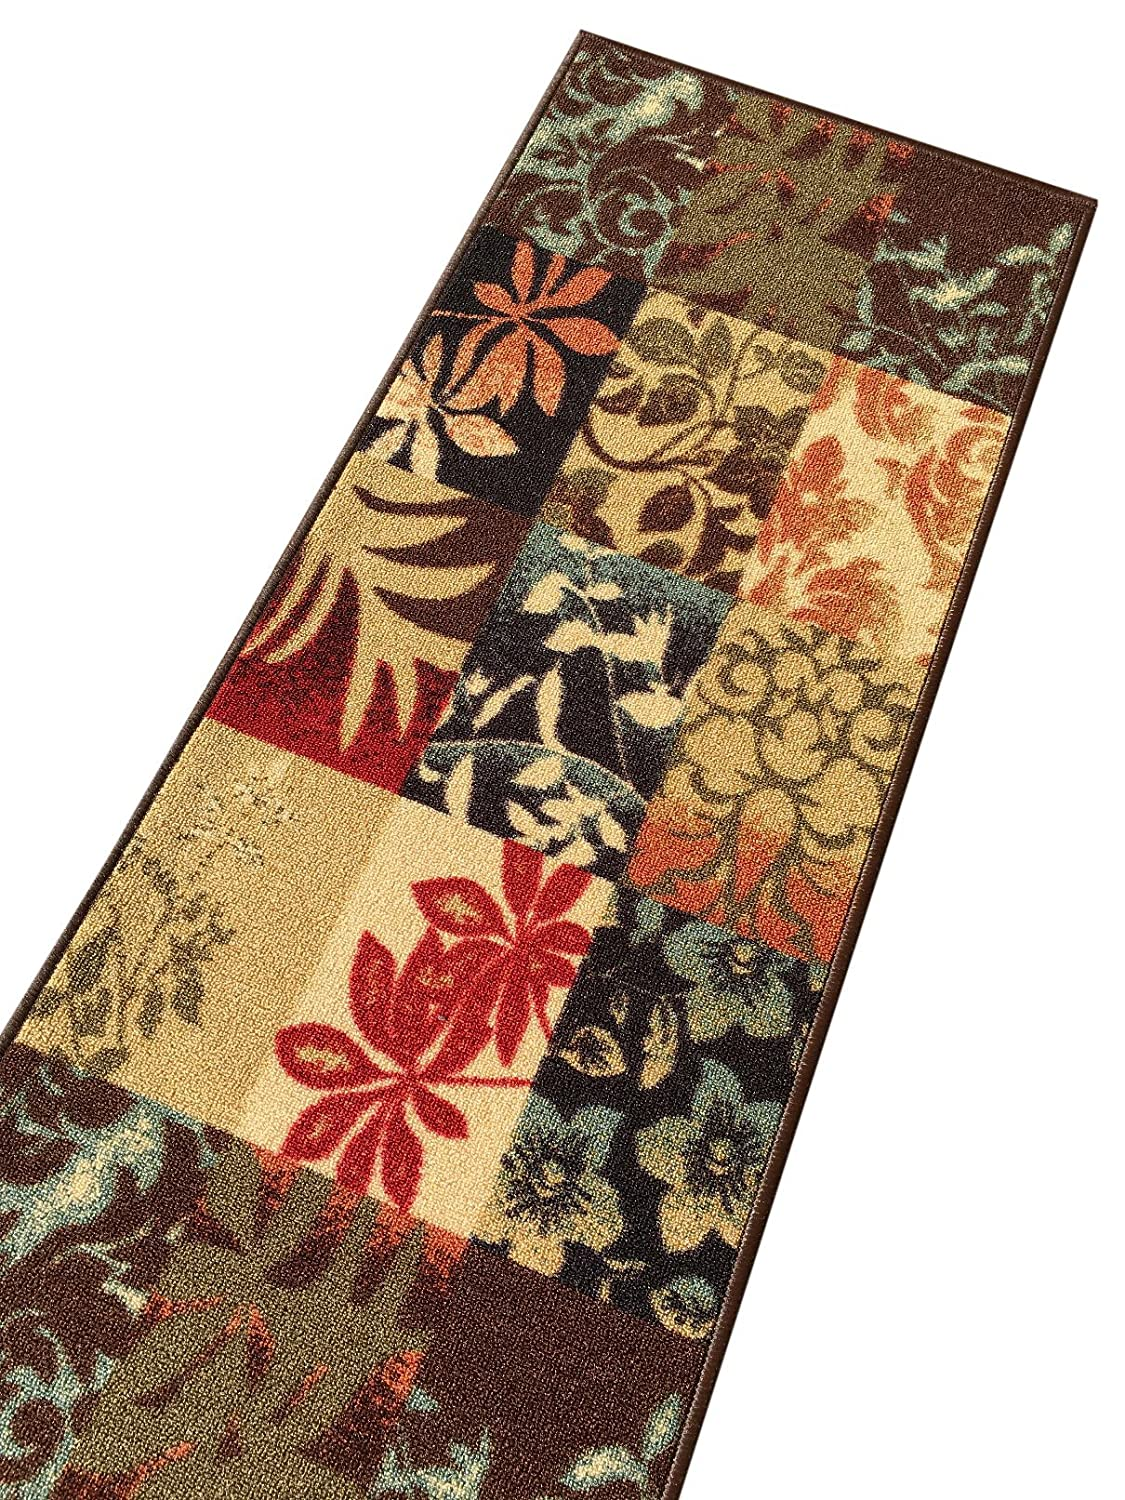 Kapaqua Rubber Backed 2'8 x 10' Italian Floral Panel Boxes Brown Multicolor Long Non-Slip Runner Rug - Rana Collection Kitchen Dining Living Hallway Bathroom Pet Entry Rugs RAN2029-310 2029-3X10